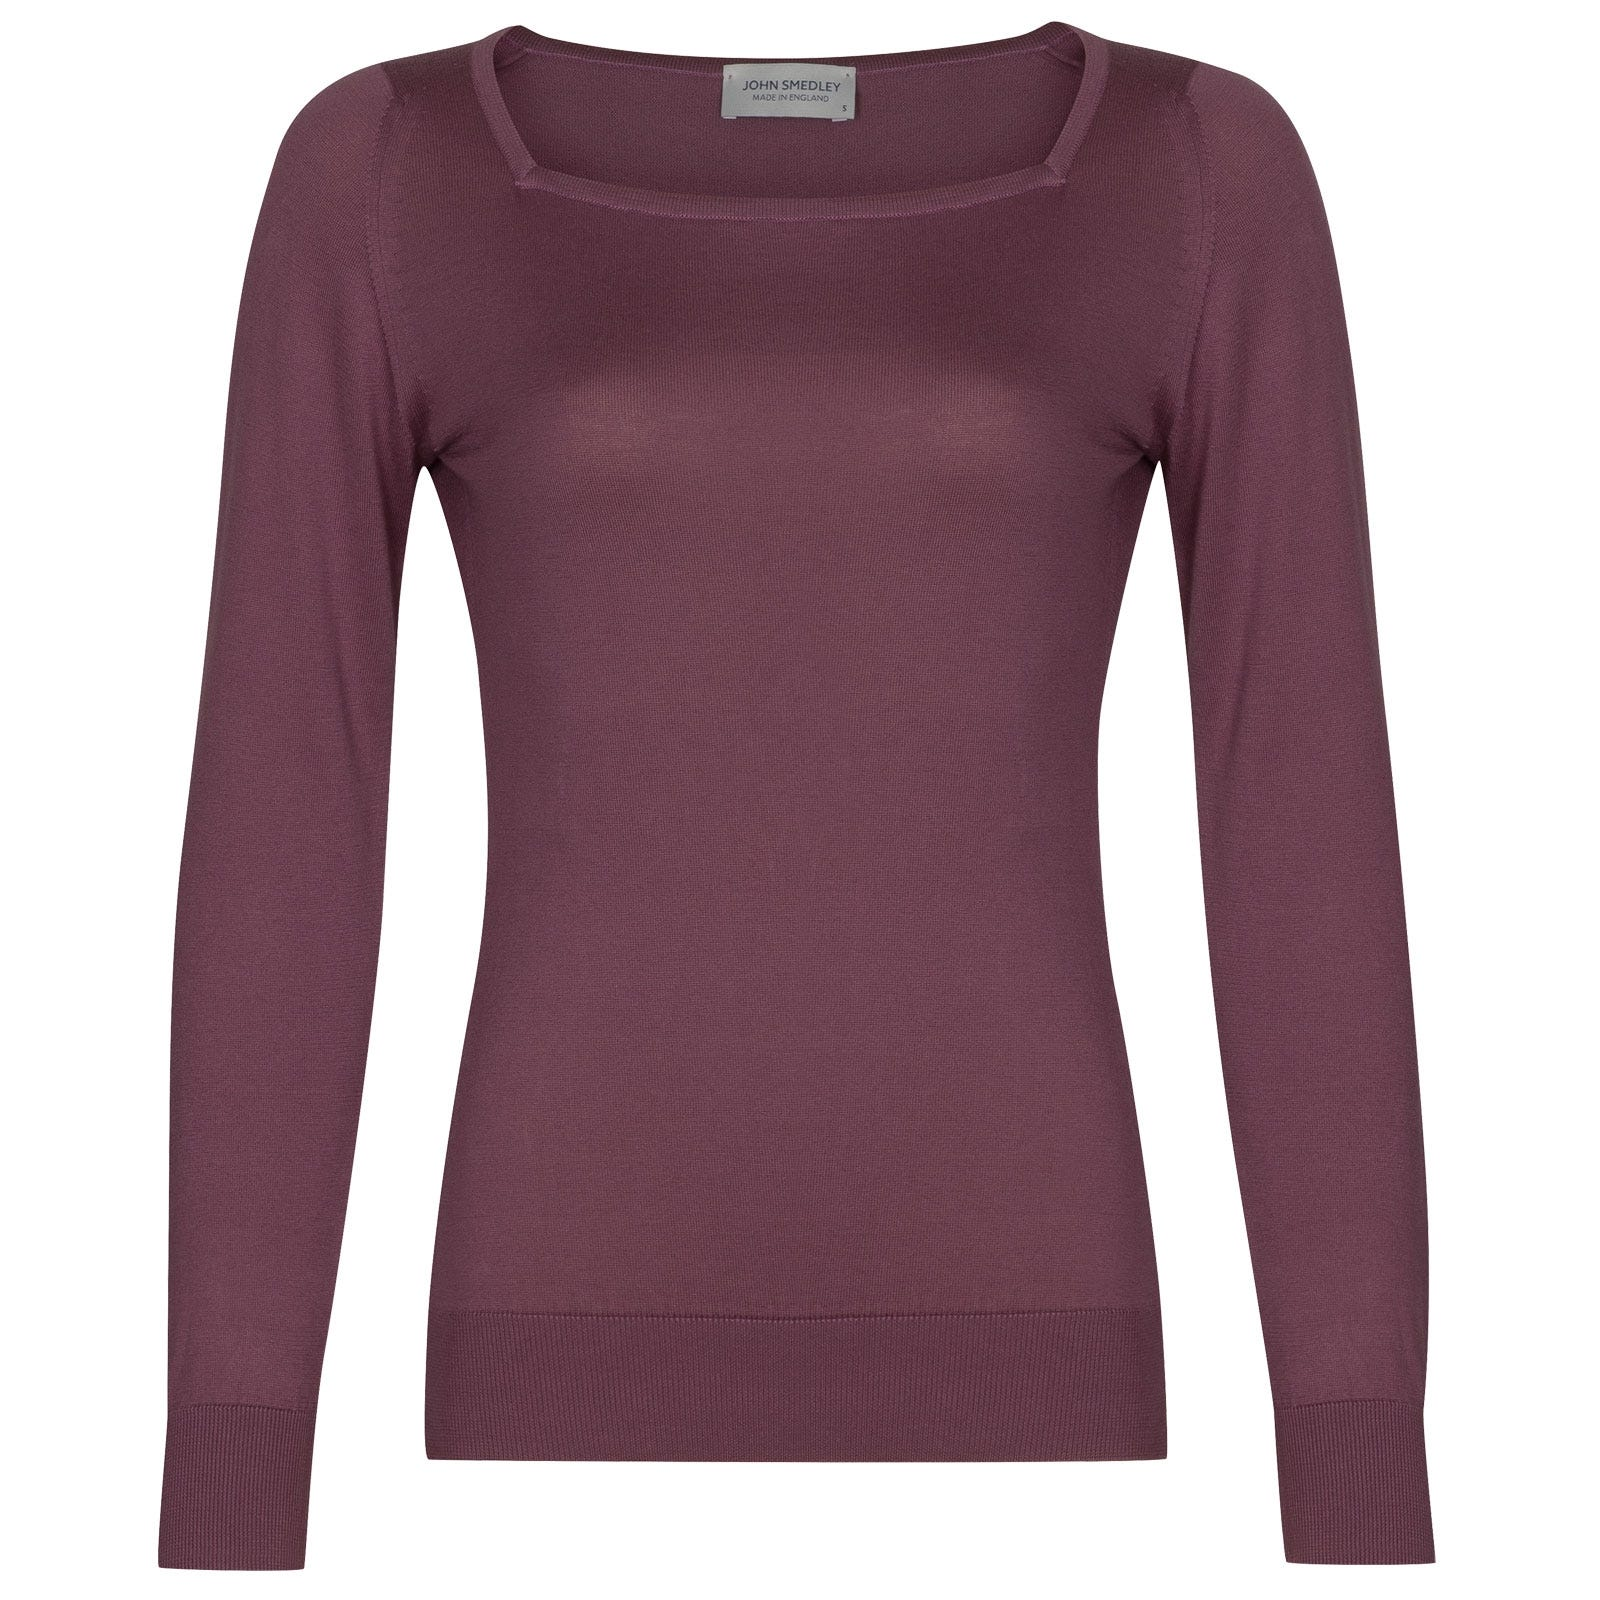 John Smedley Katia in Brassica Purple Sweater-LGE